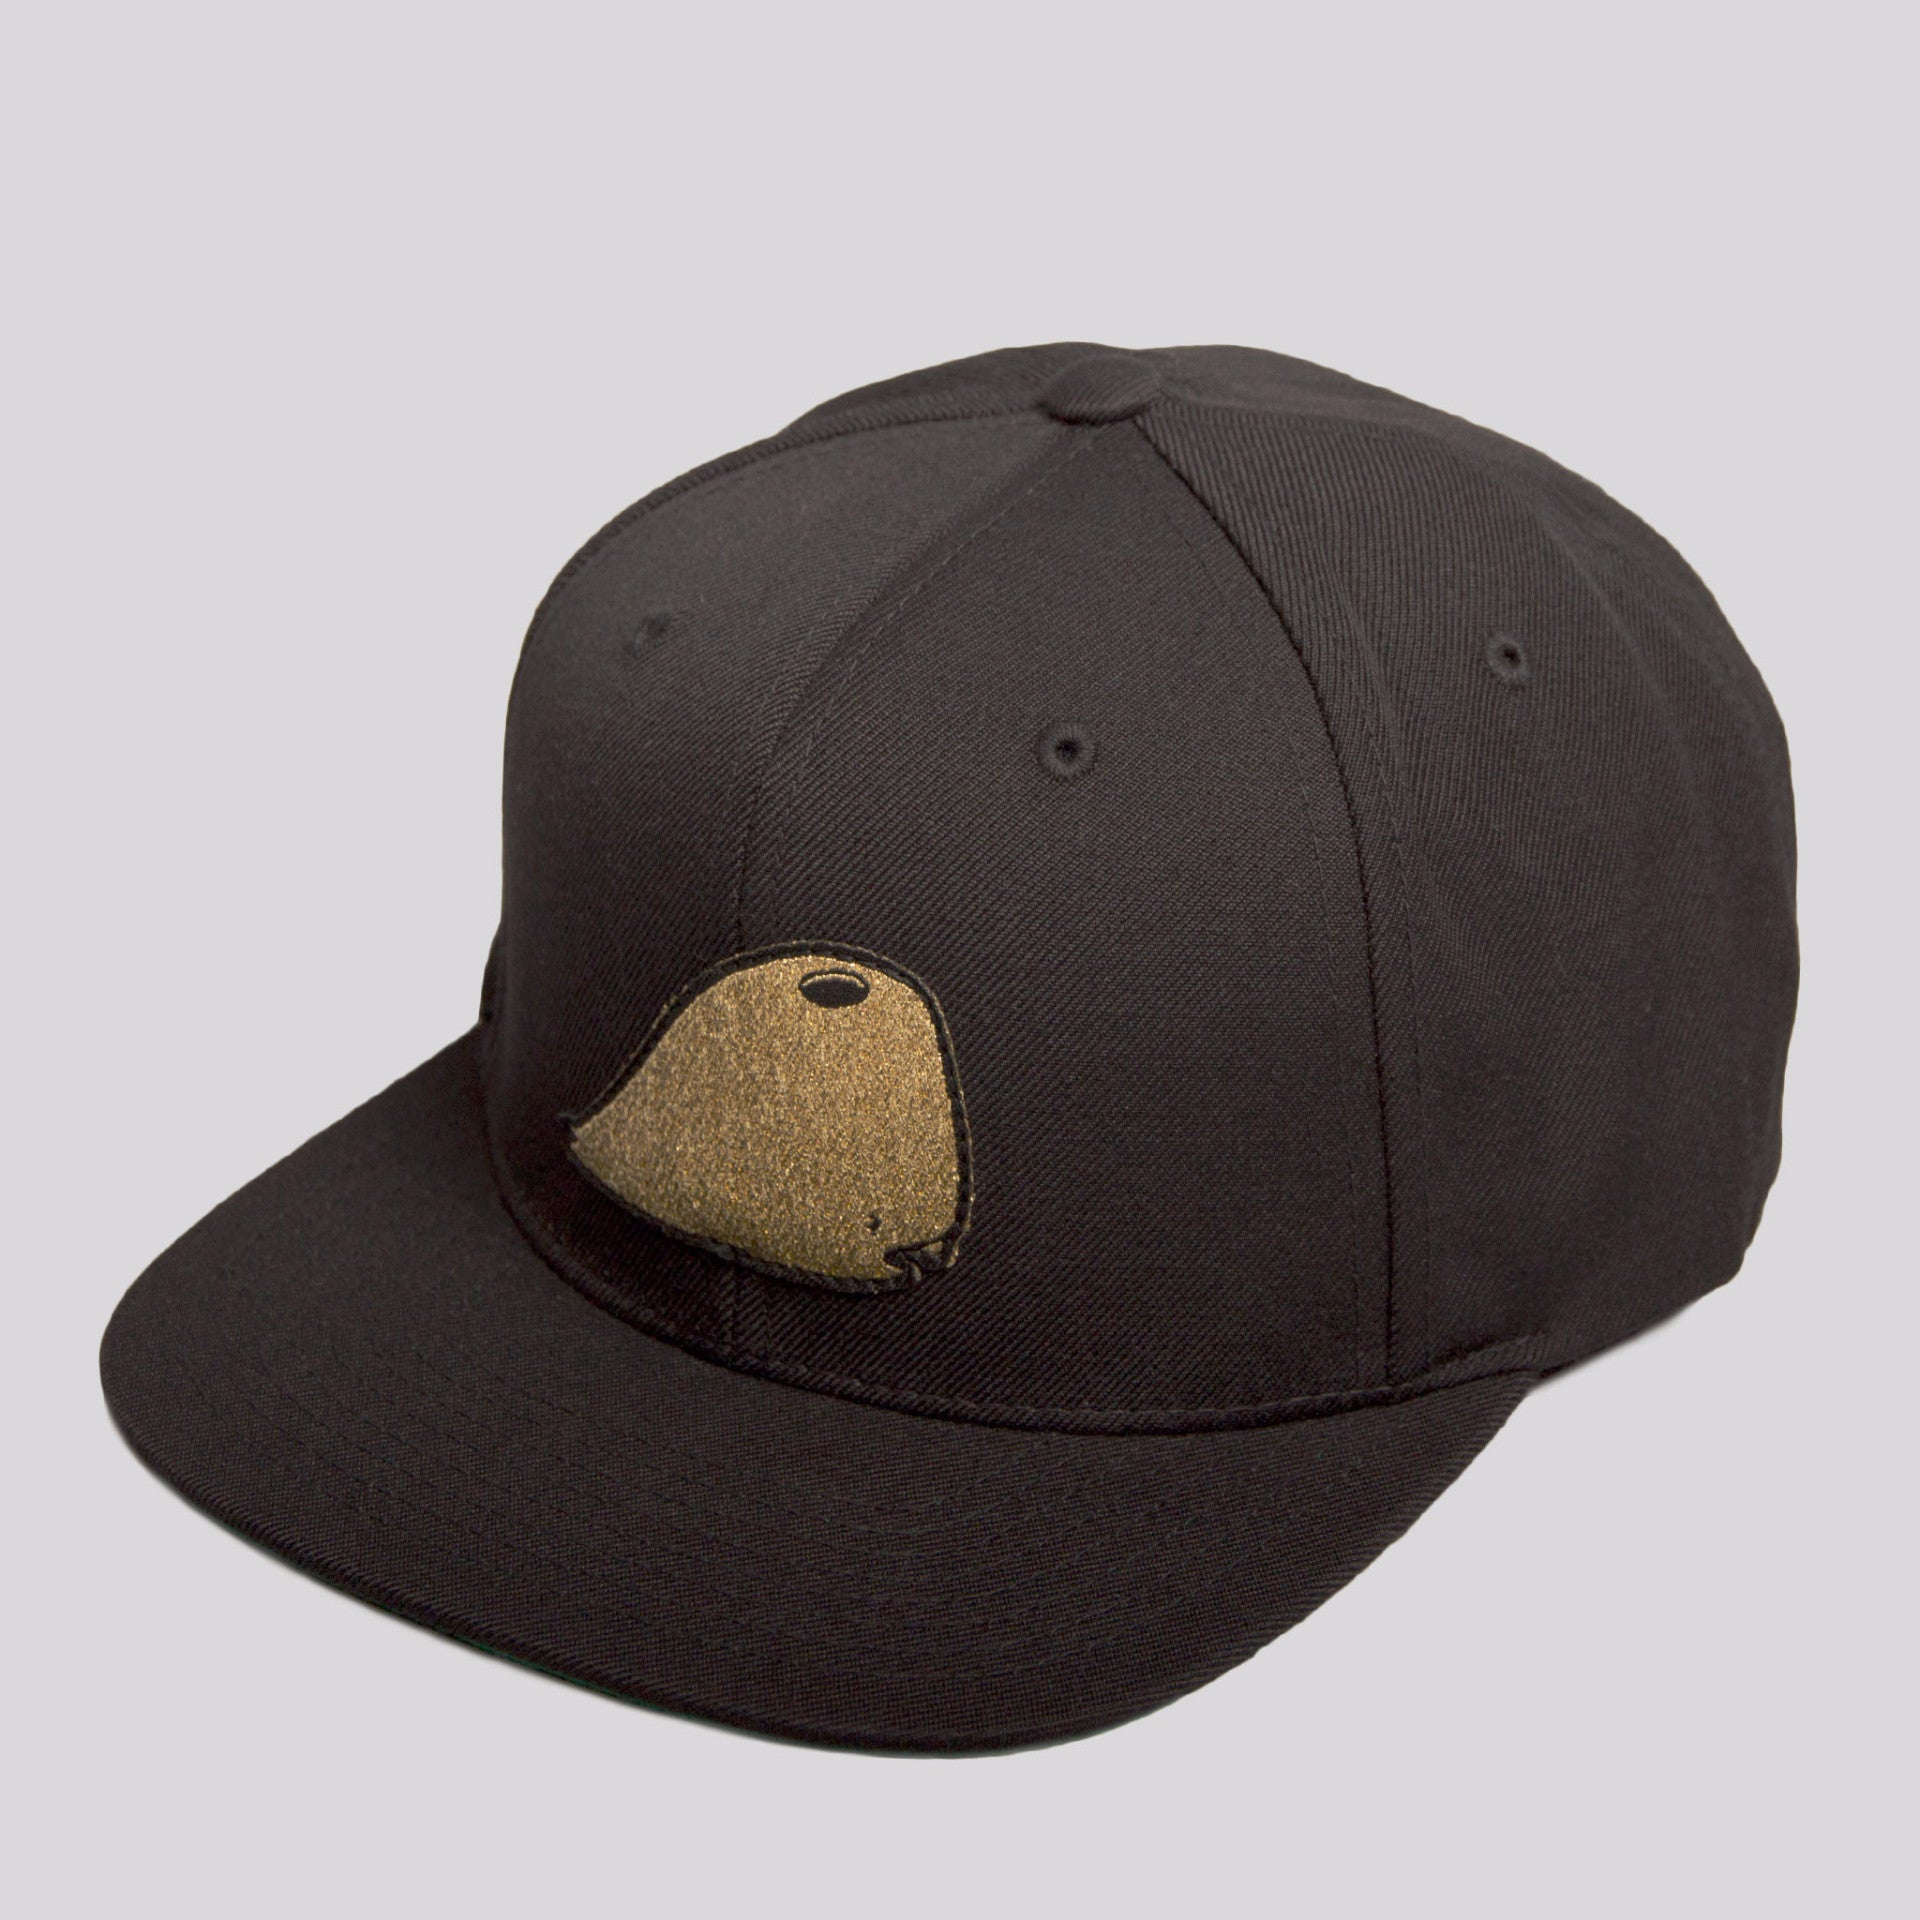 Munko Snapback in Black